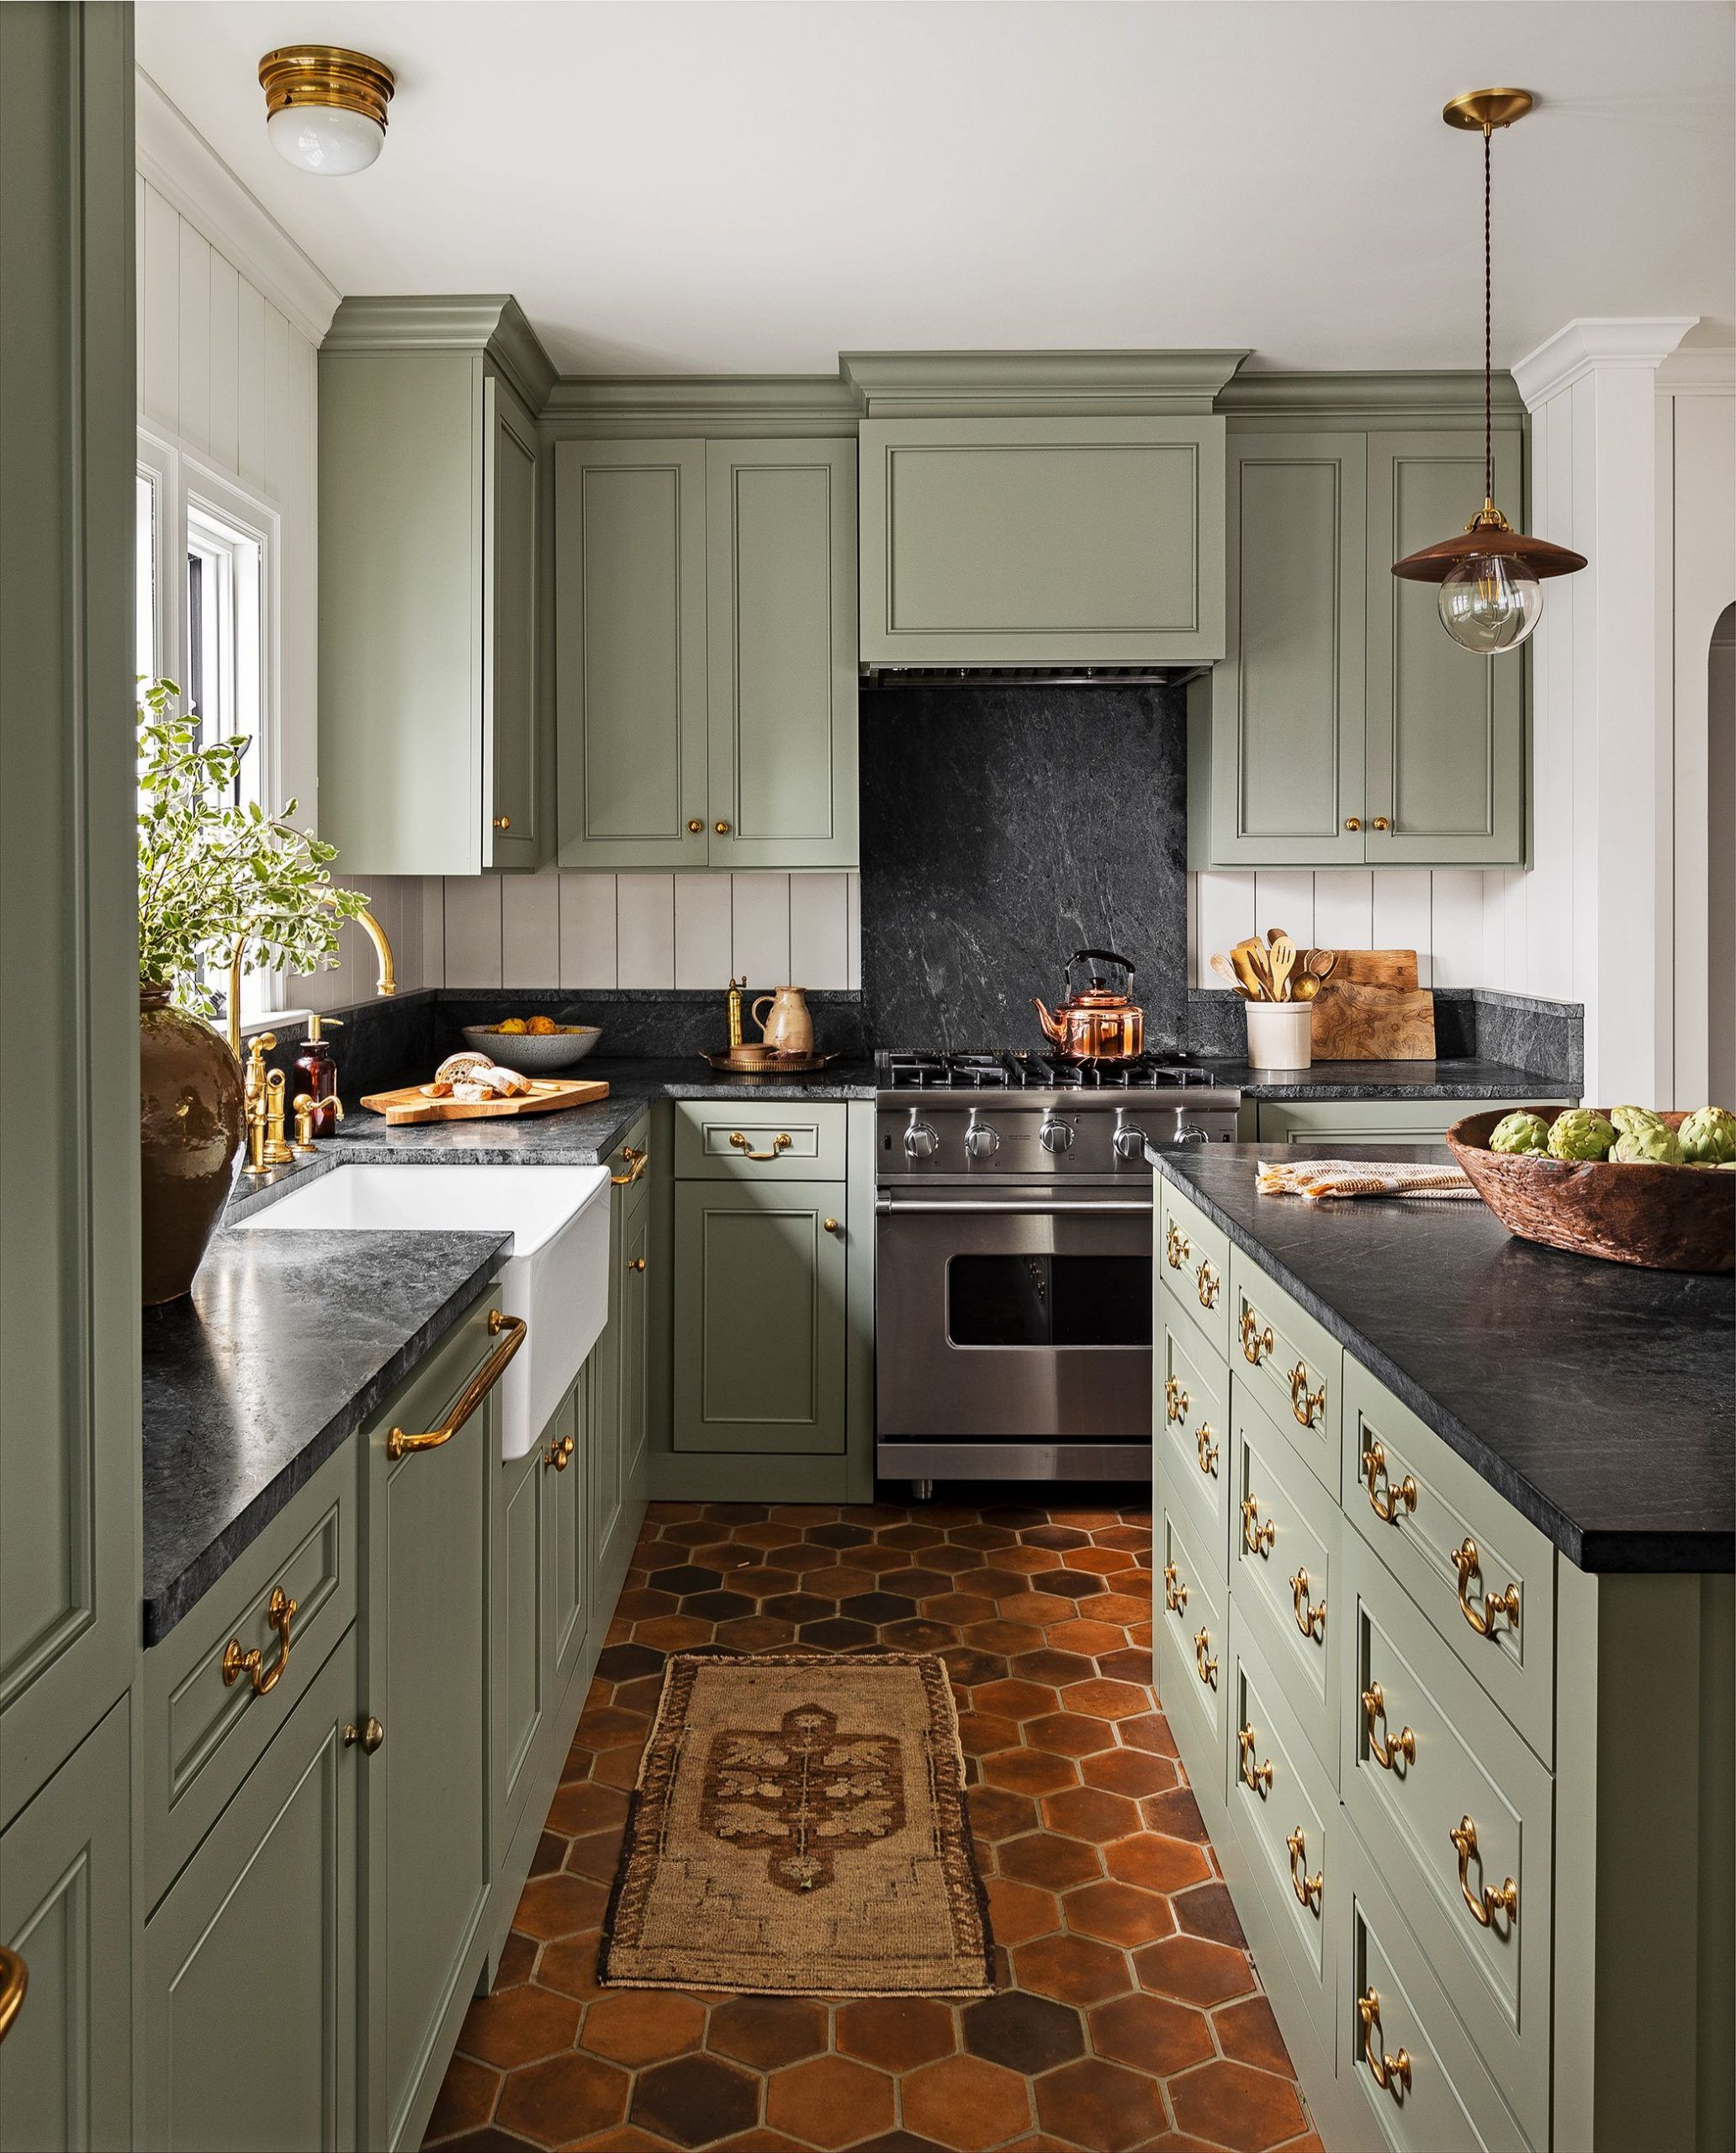 Light Brown Painted Kitchen Cabinet Beautiful 15 Best Green Kitchen Cabinet Ideas Top Gr In 2020 Traditional Kitchen Island Kitchen Design Color Green Kitchen Cabinets